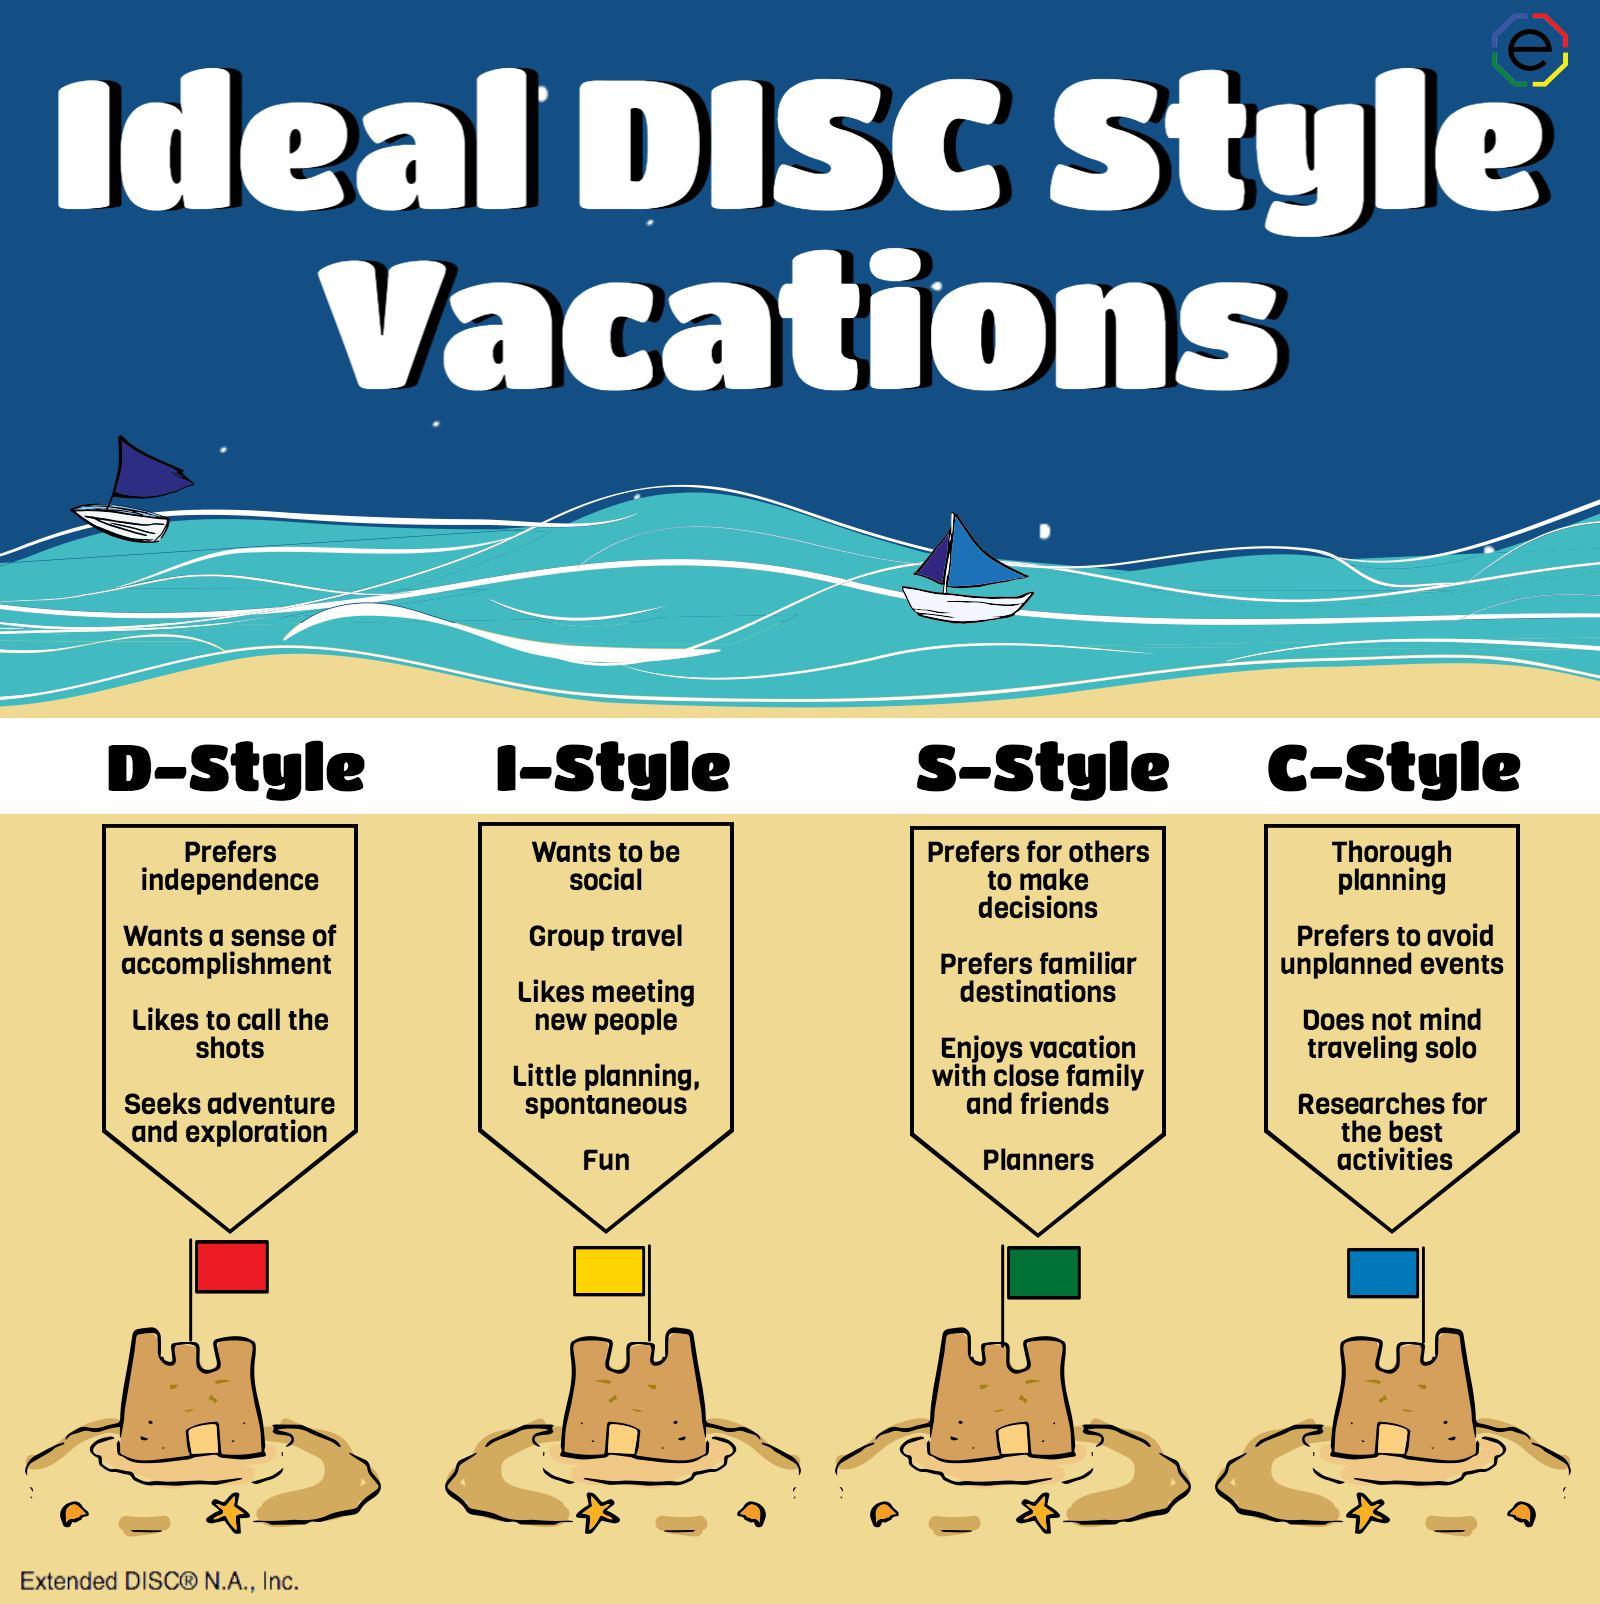 Ideal Vacations for the Four DISC Profiles